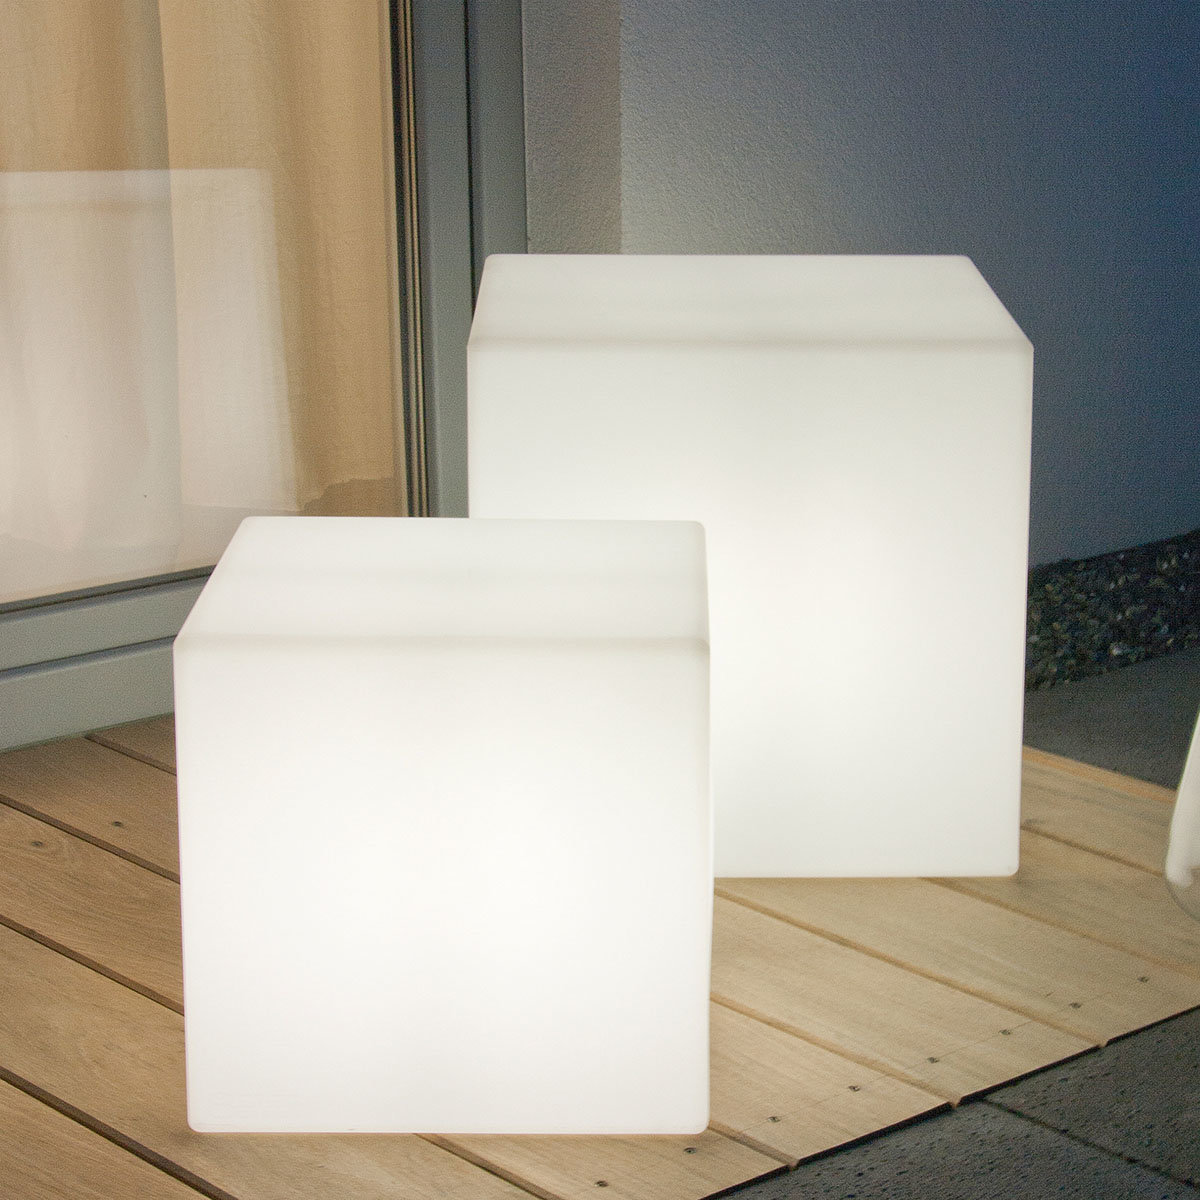 Super LED-Lampe Shining Cube, 43 cm